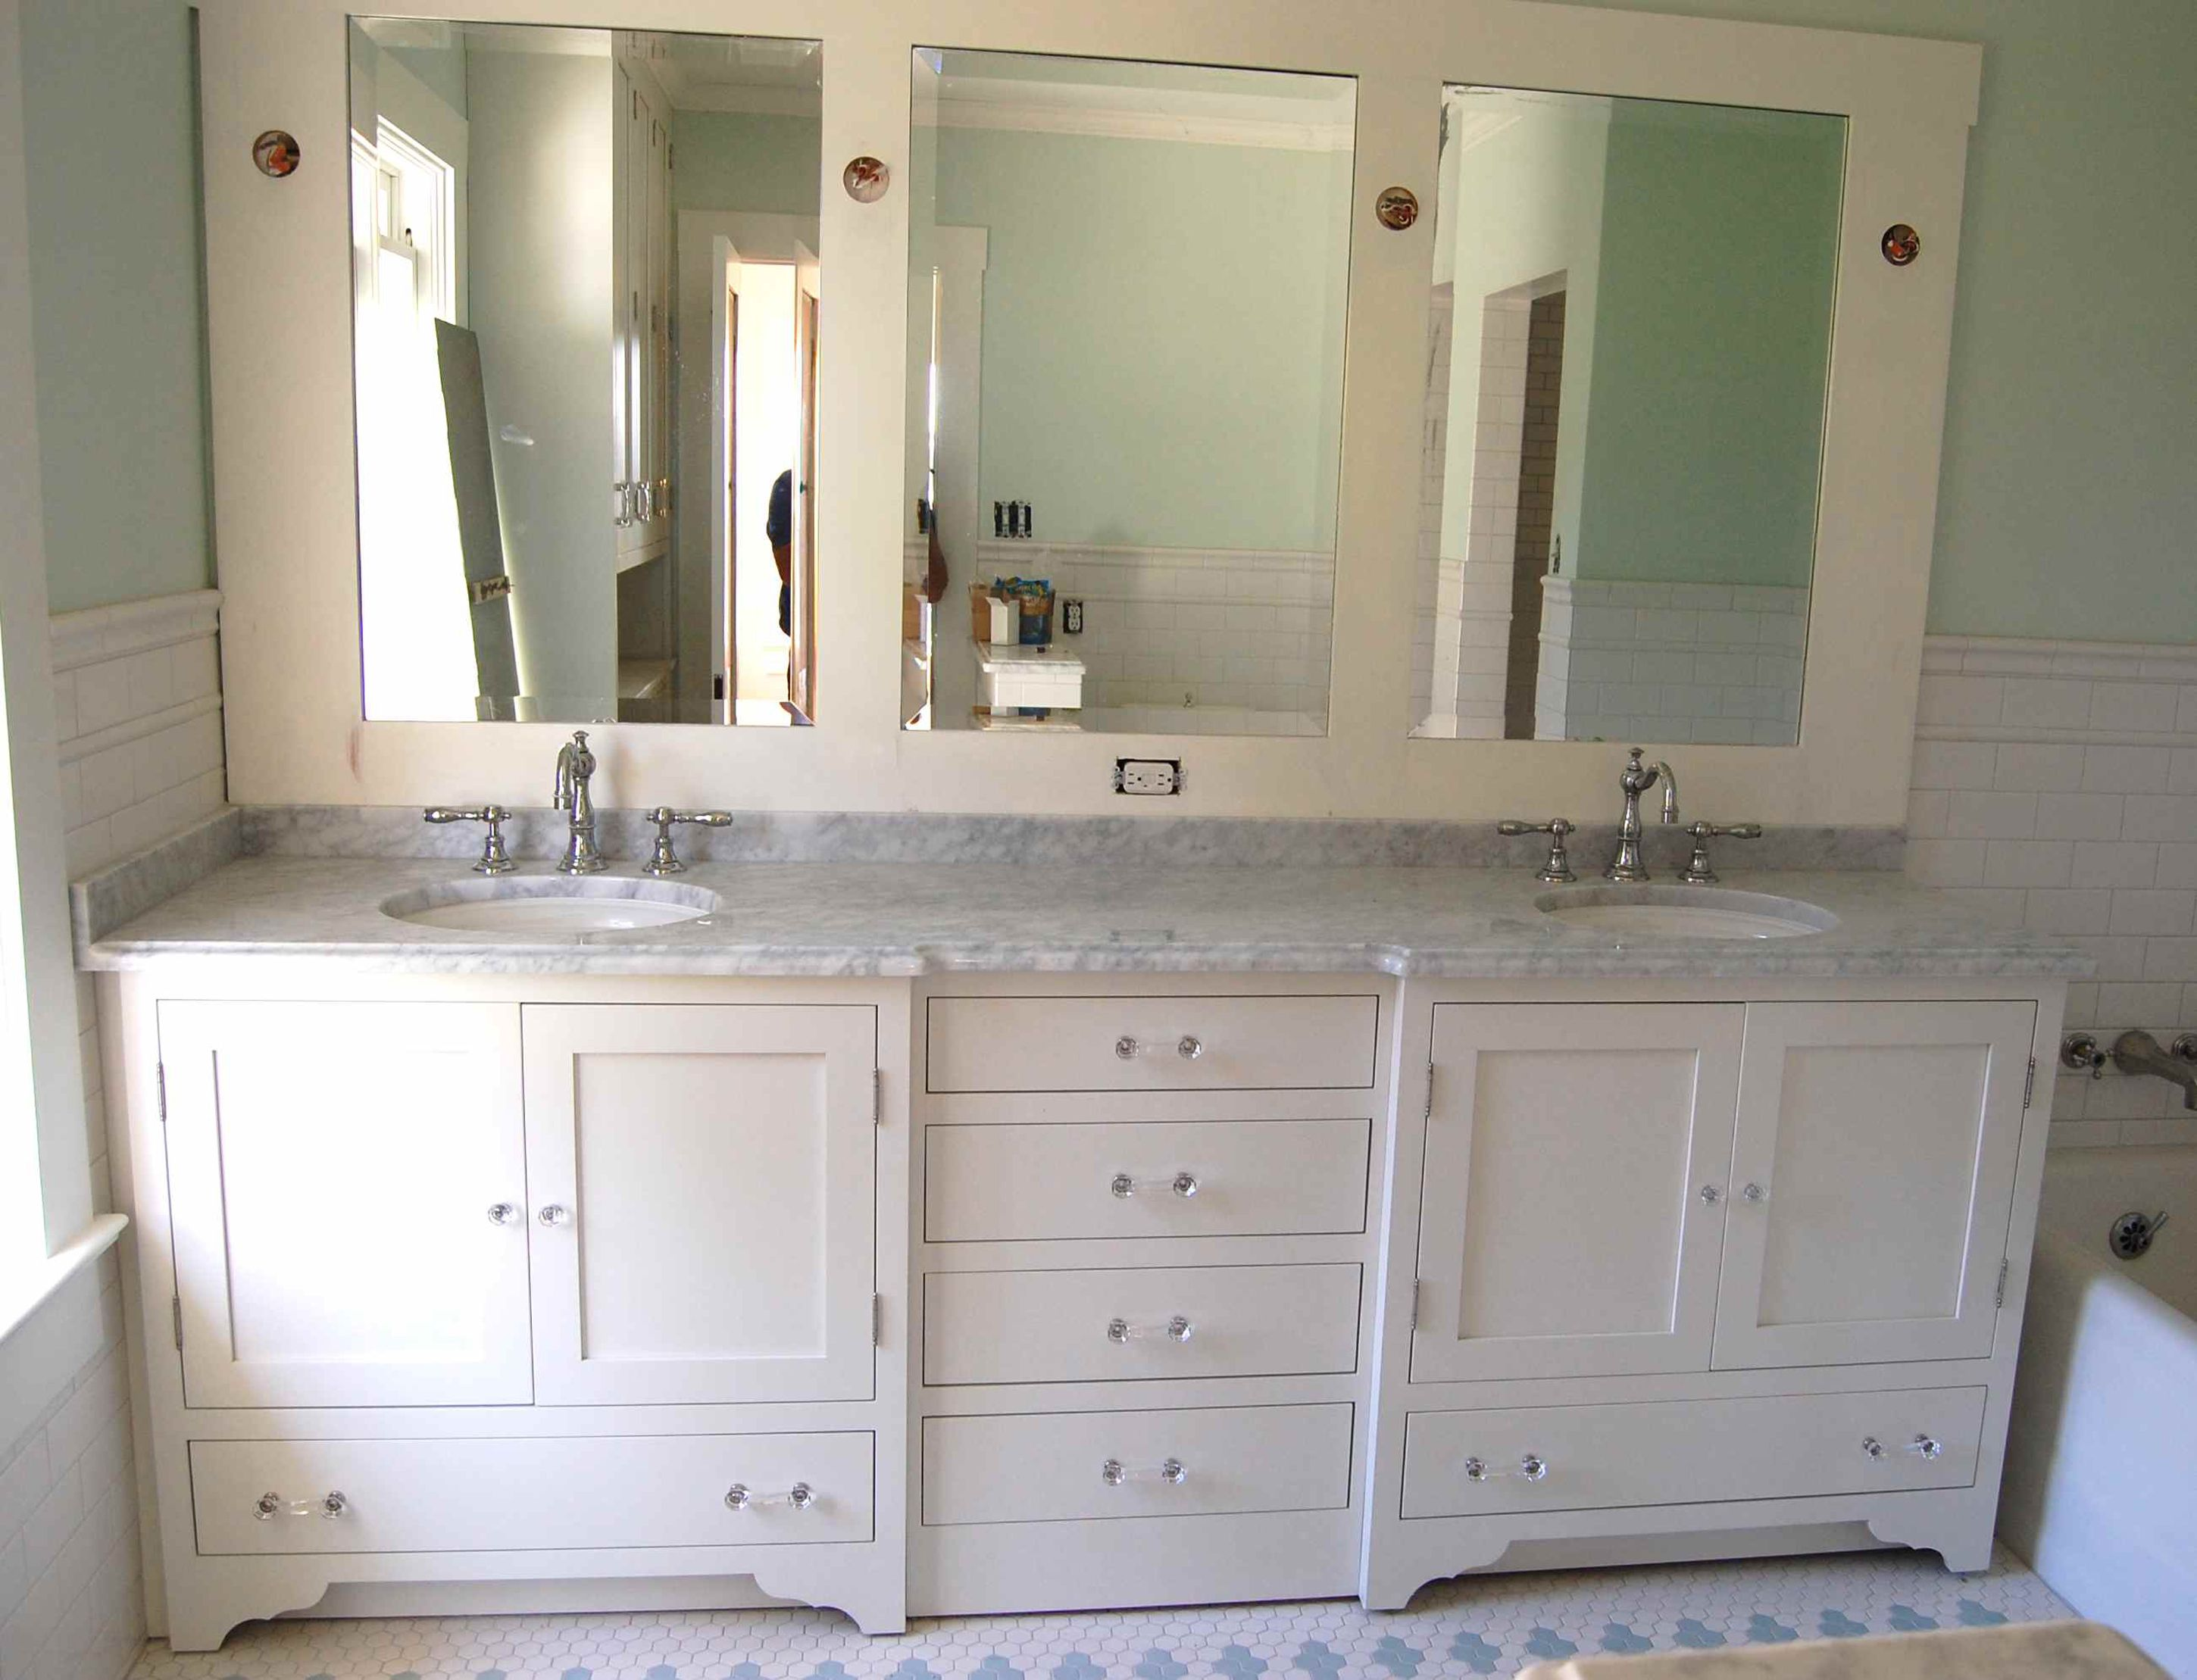 Bathroom Vanities Design Ideas Extraordinary Lovable White Bathroom Vanity Cabinet Design Idea With Gray Review